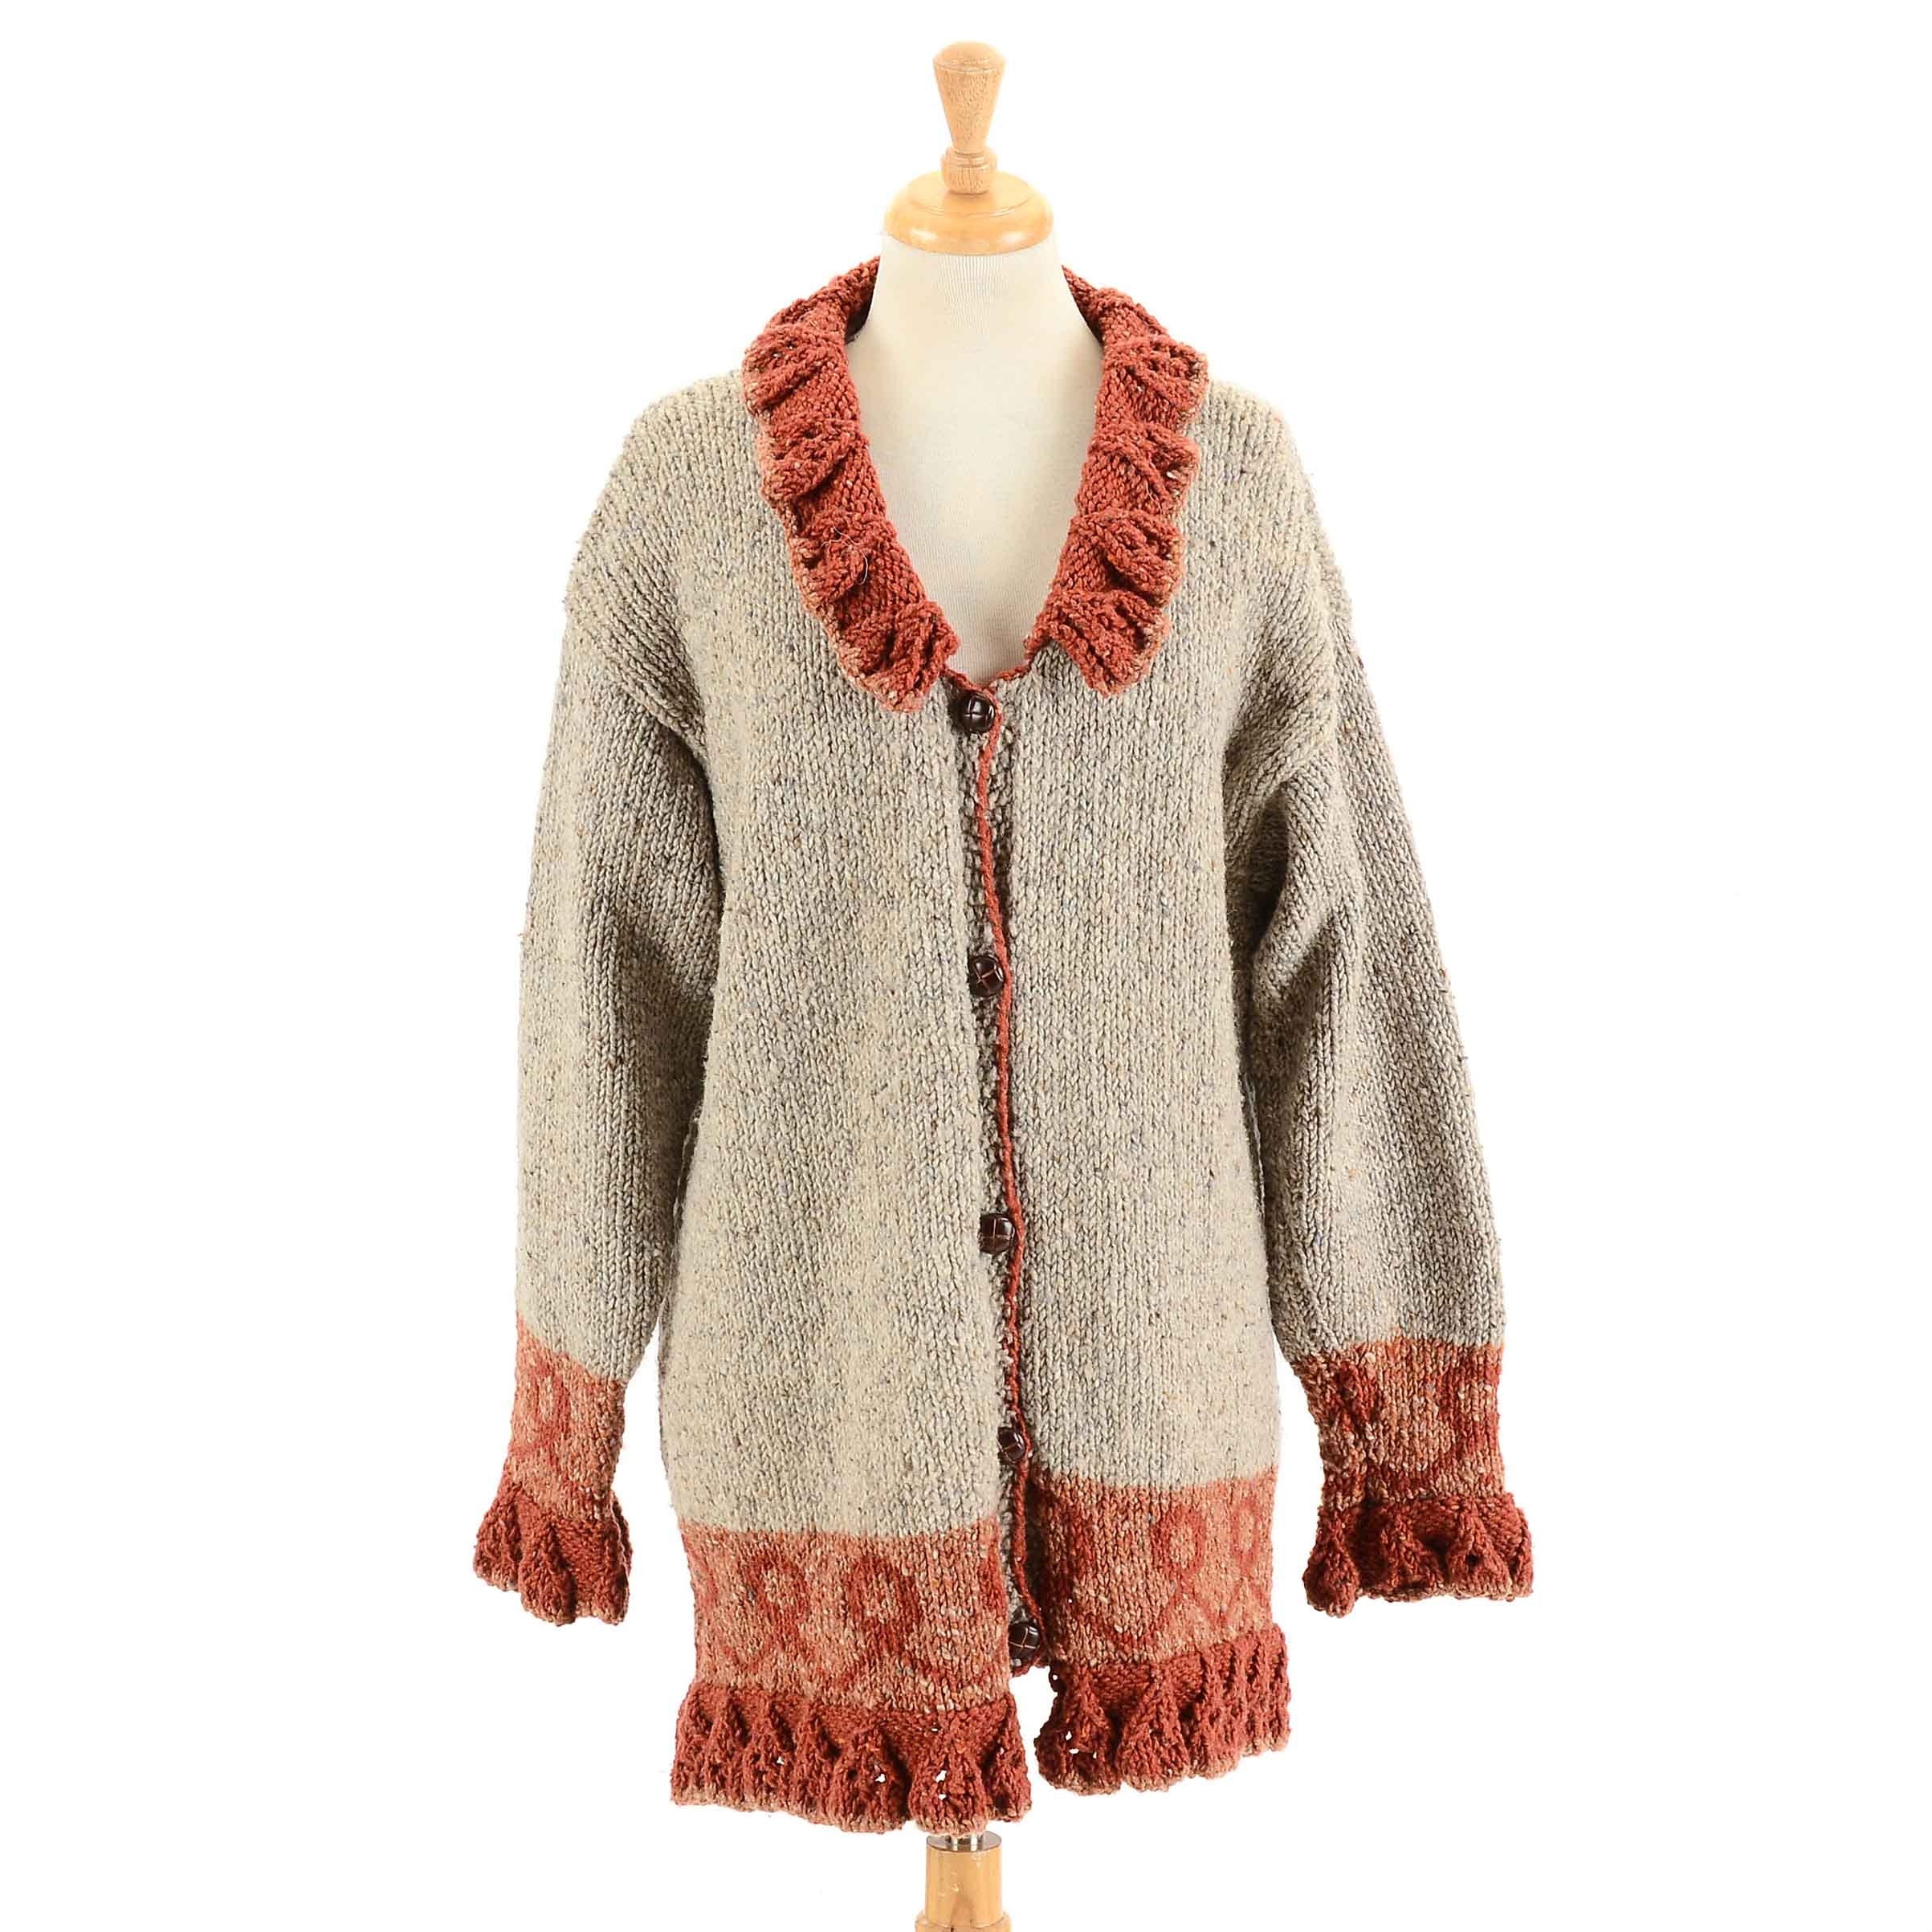 Snamara Irish Wool Jacket Sweater